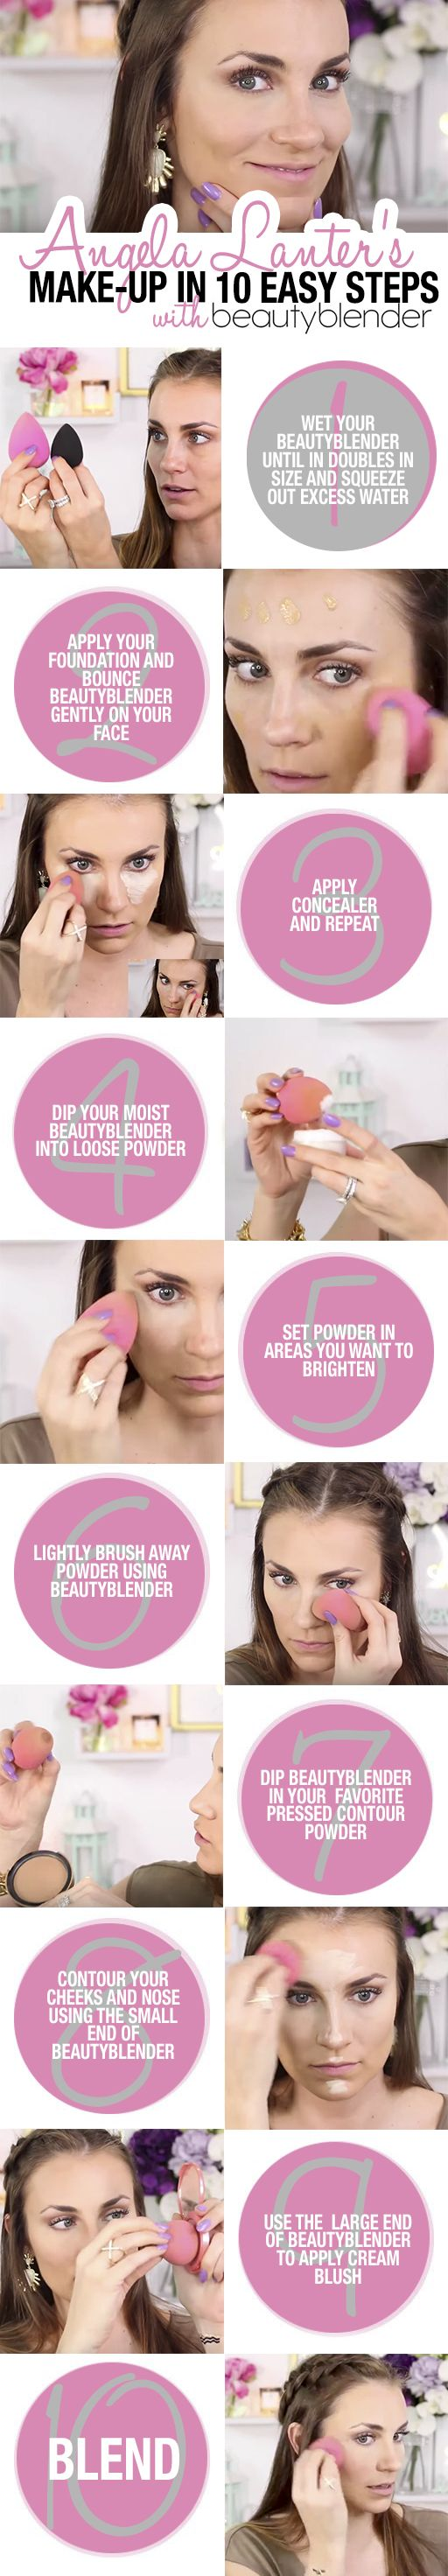 Full face makeup tutorial using a beautyblender in 10 steps. #HelloGorgeous